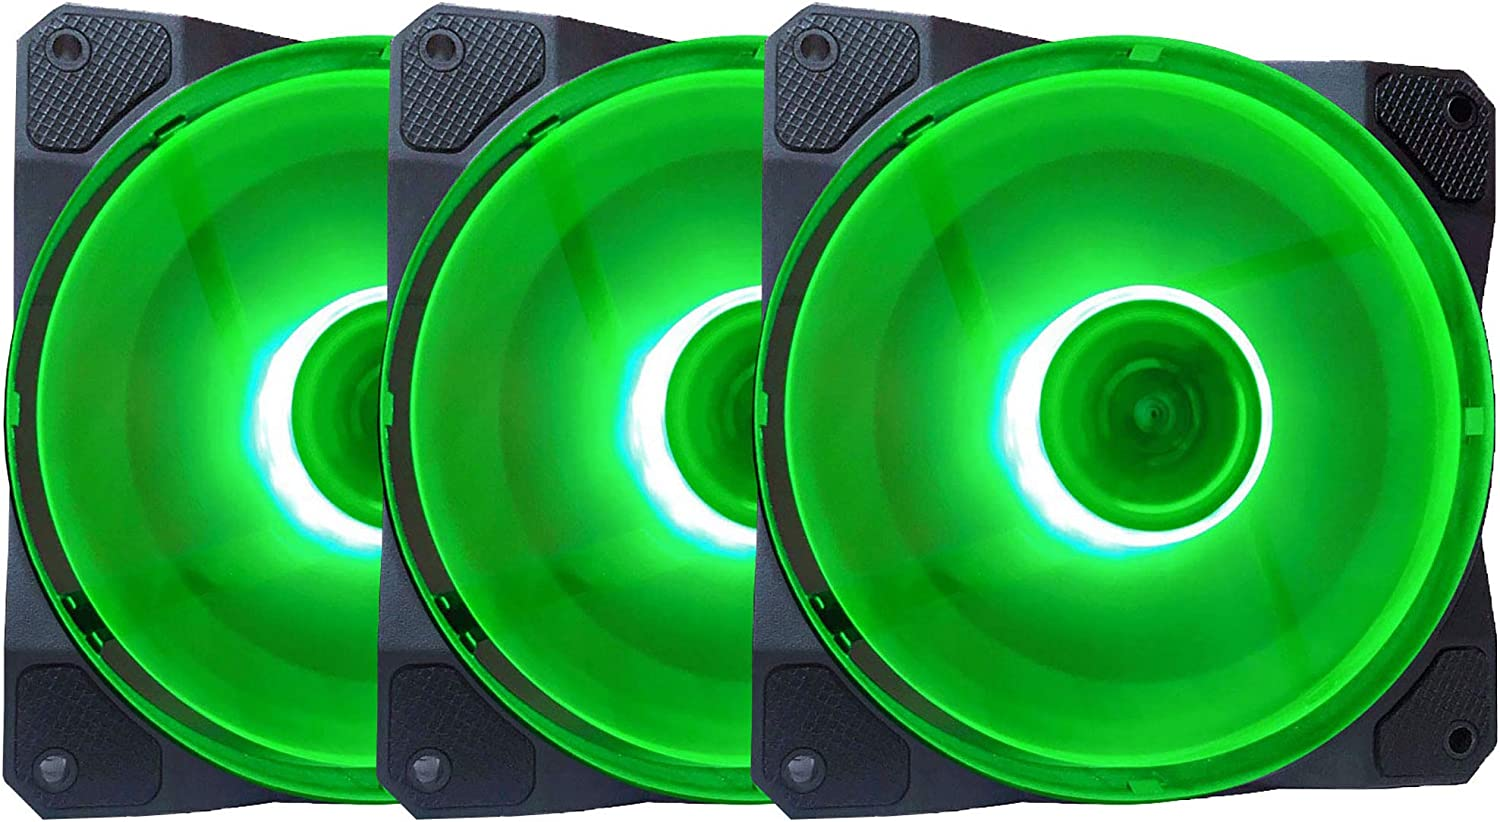 APEVIA CO312L-GN Cosmos 120mm Green LED Ultra Silent Case Fan w/ 16 LEDs & Anti-Vibration Rubber Pads (3 Pk)